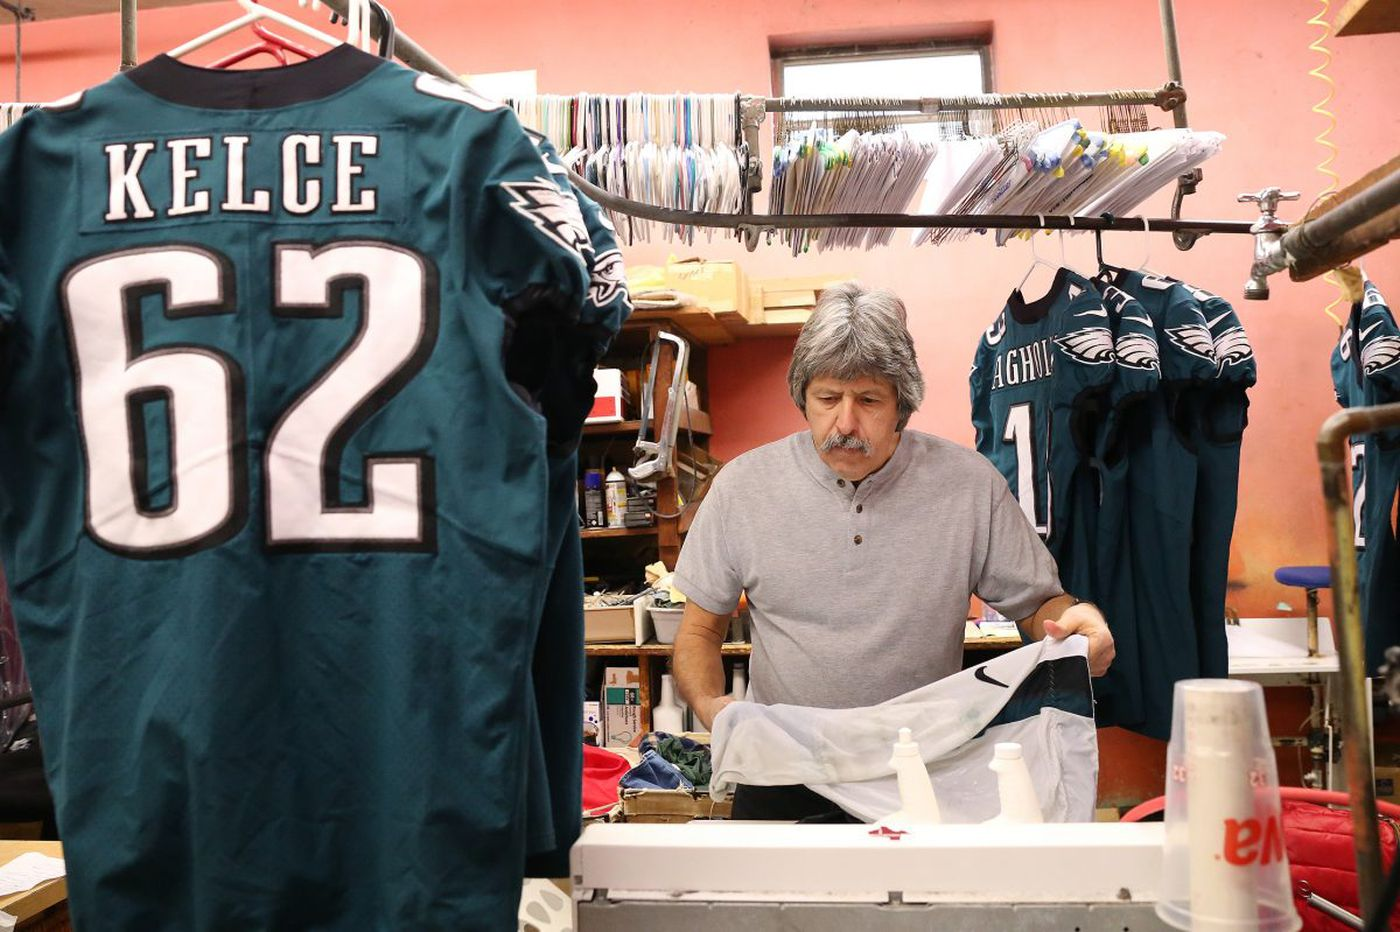 South Philly brothers tackle the Eagles' dirty laundry | We the People